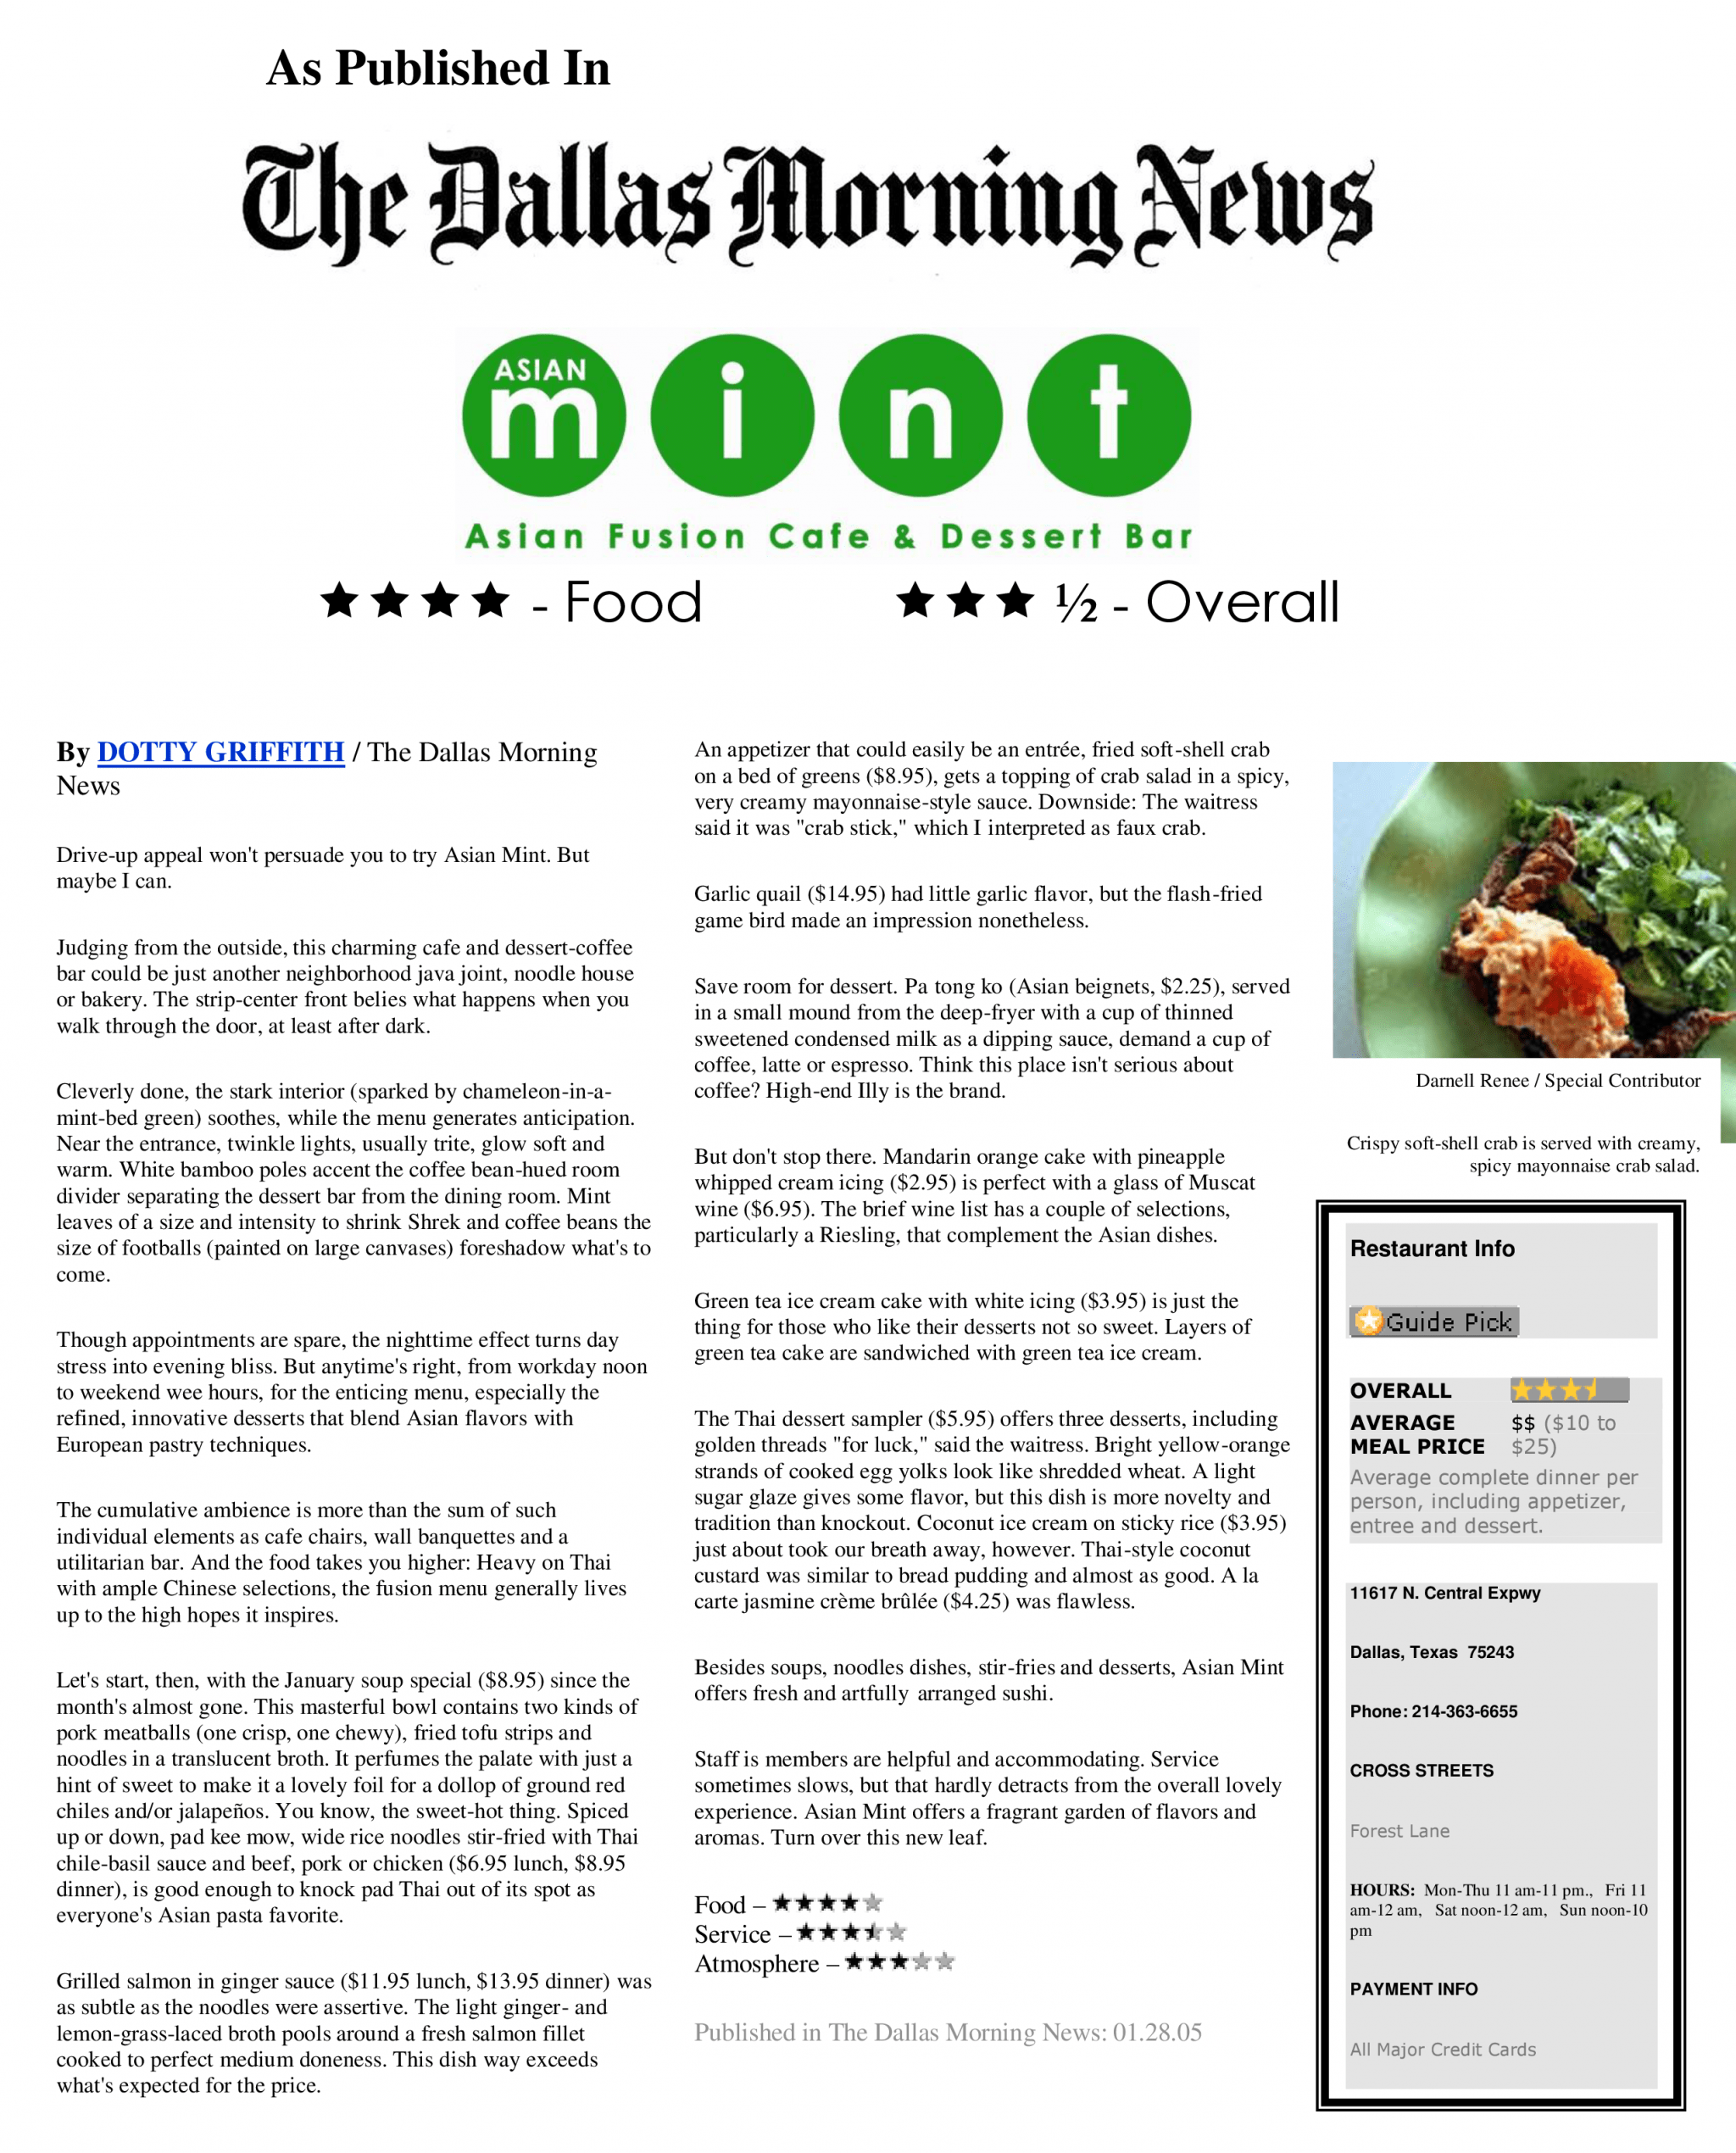 The Dallas Morning News Article About Asian Mint